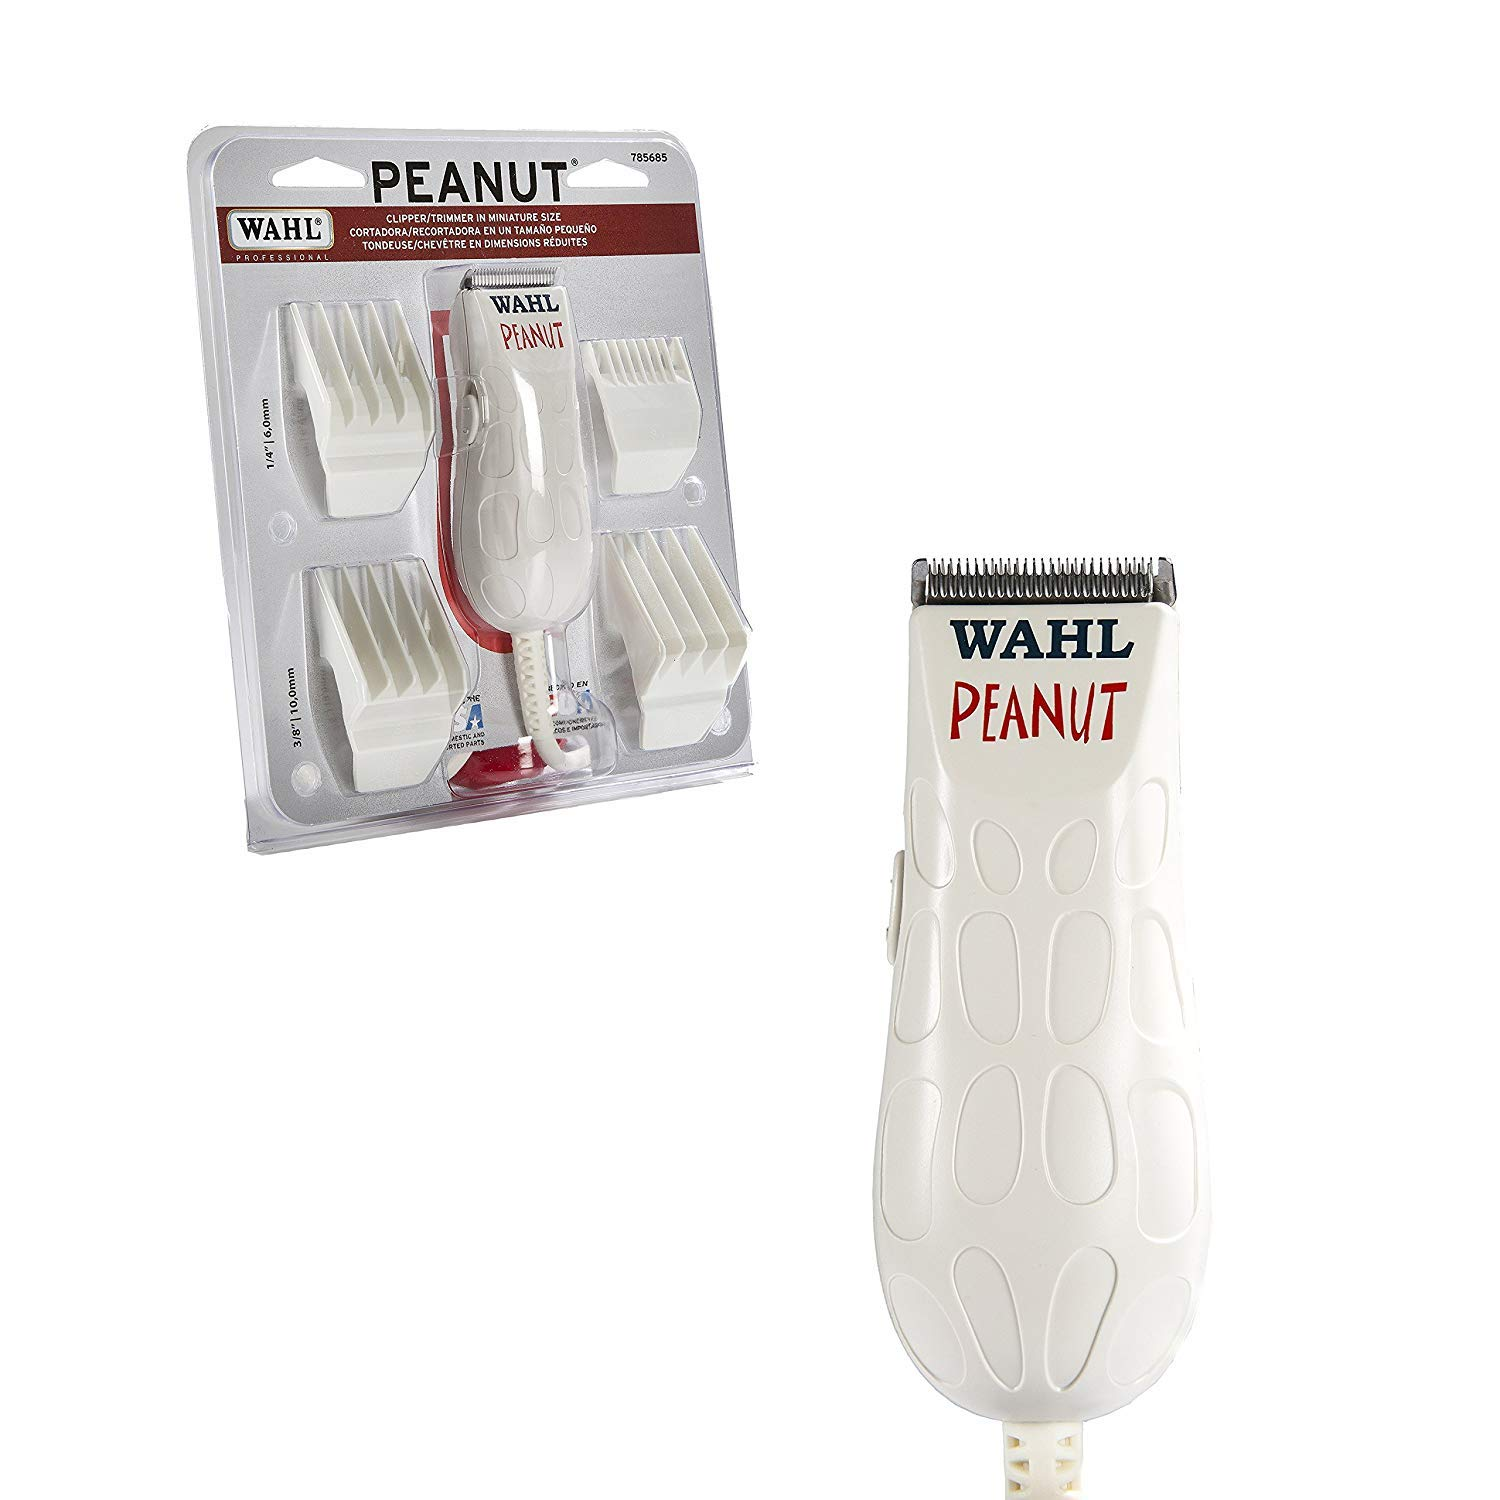 Wahl Professional Peanut Clipper/Trimmer #8655 - Great for Professional Stylists and Barbers - White